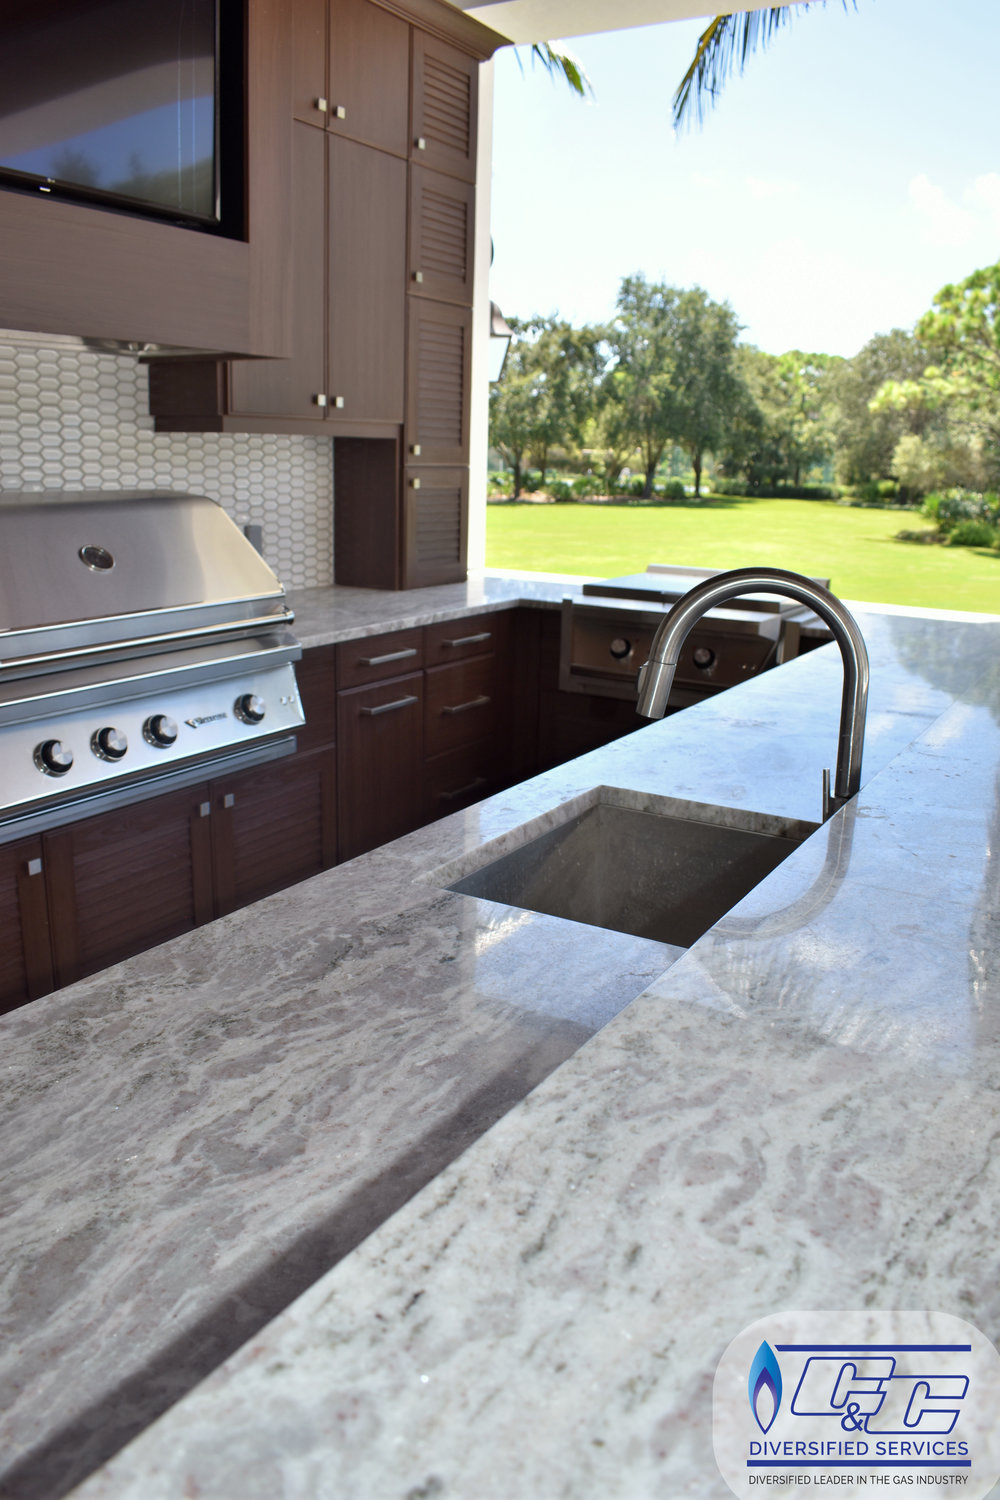 NatureKast Weatherproof Cabinetry - Undermount Stainless Steel Sink